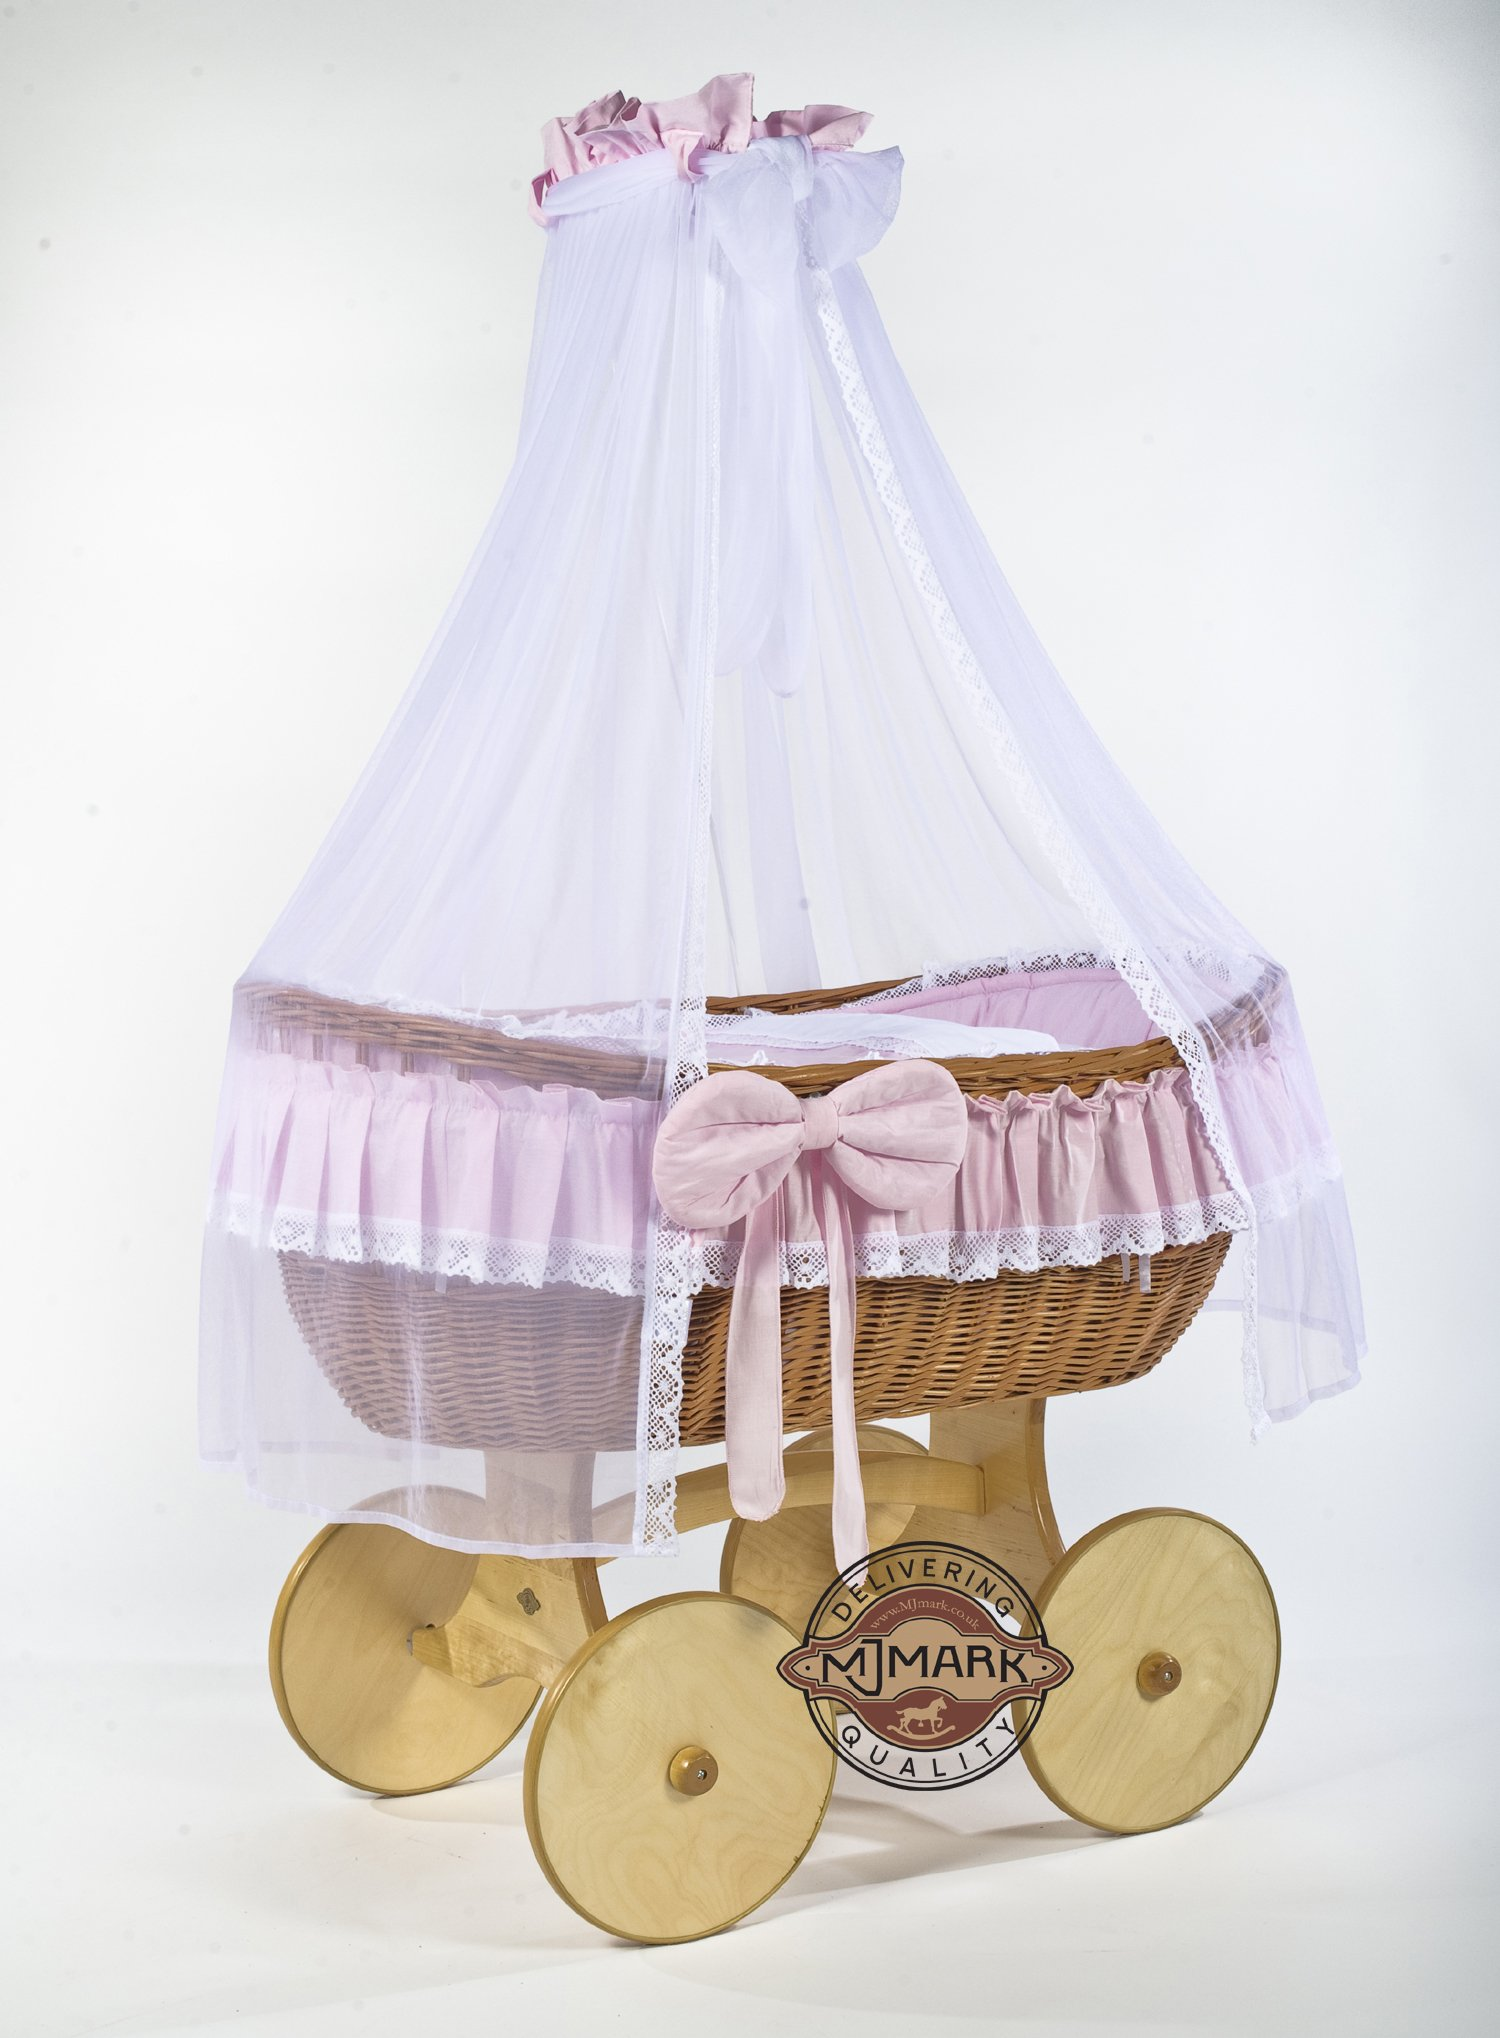 Ophelia Wicker Crib Cot (Moses Basket) Antique PINK from MJmark  Solid, Large wicker crib Handmade nature wicker basket Solid wooden base with wheels 1